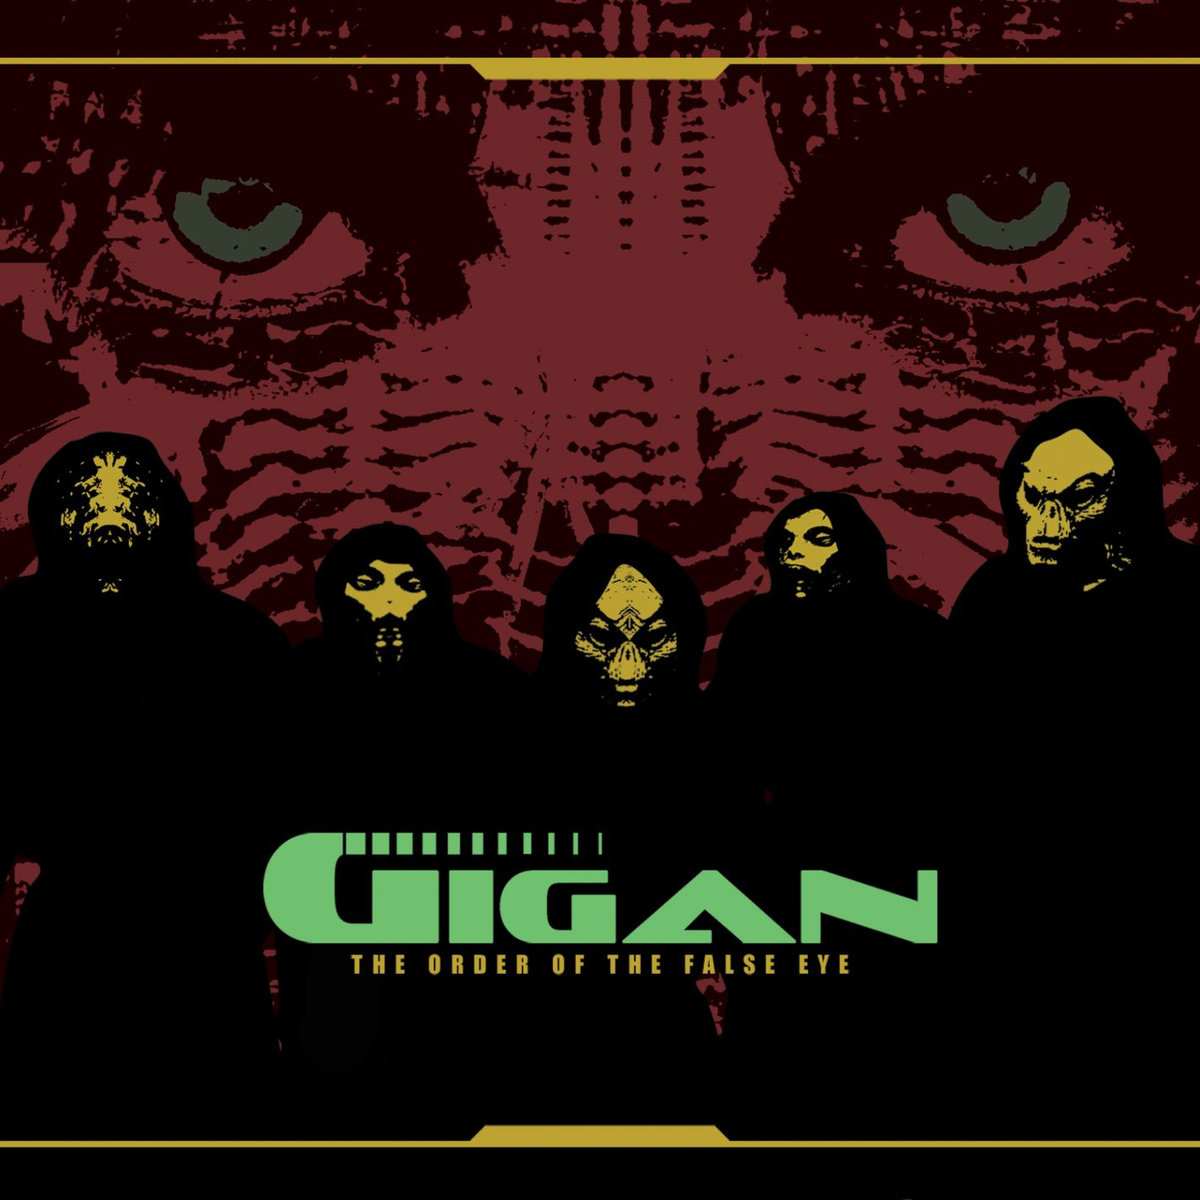 Gigan - The Order Of The False Eye - 2008